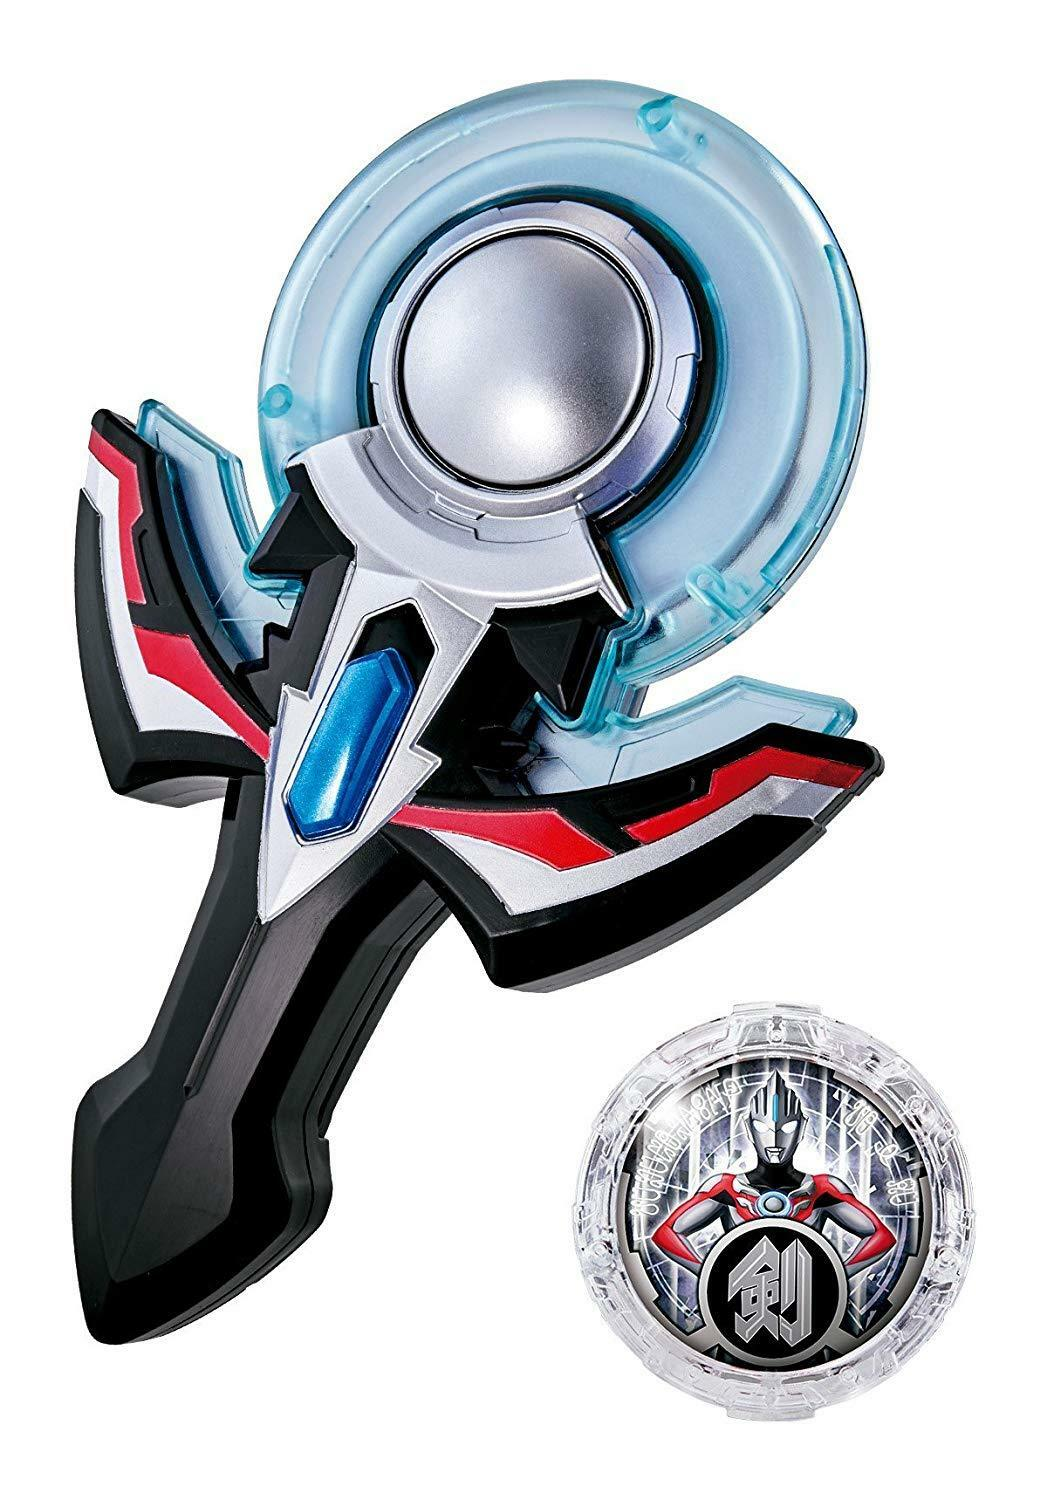 NEW Bandai Ultraman R B Rube Lube DX DX DX Orb Ring NEO & Dx Rube Gyro Japan Toy F S d1702a